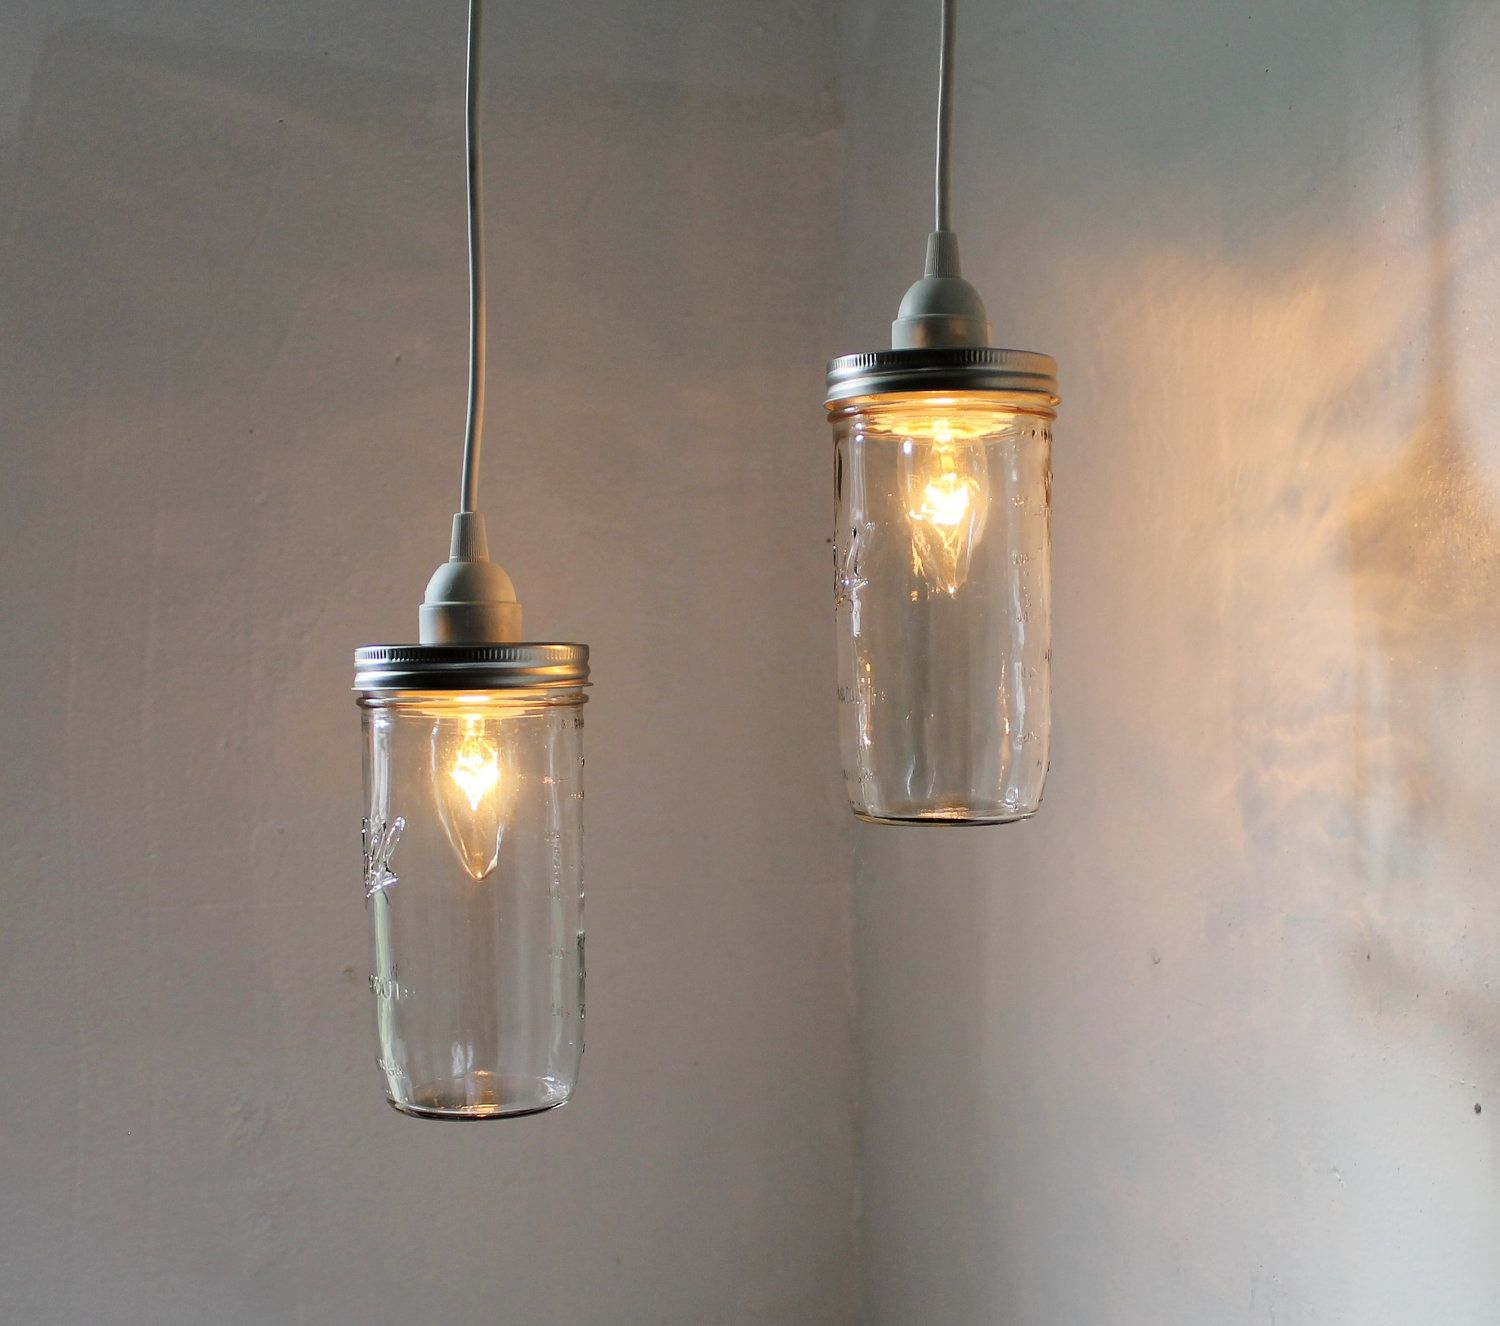 Stargaze set of 2 hanging mason jar pendant lights for Country lighting fixtures for home